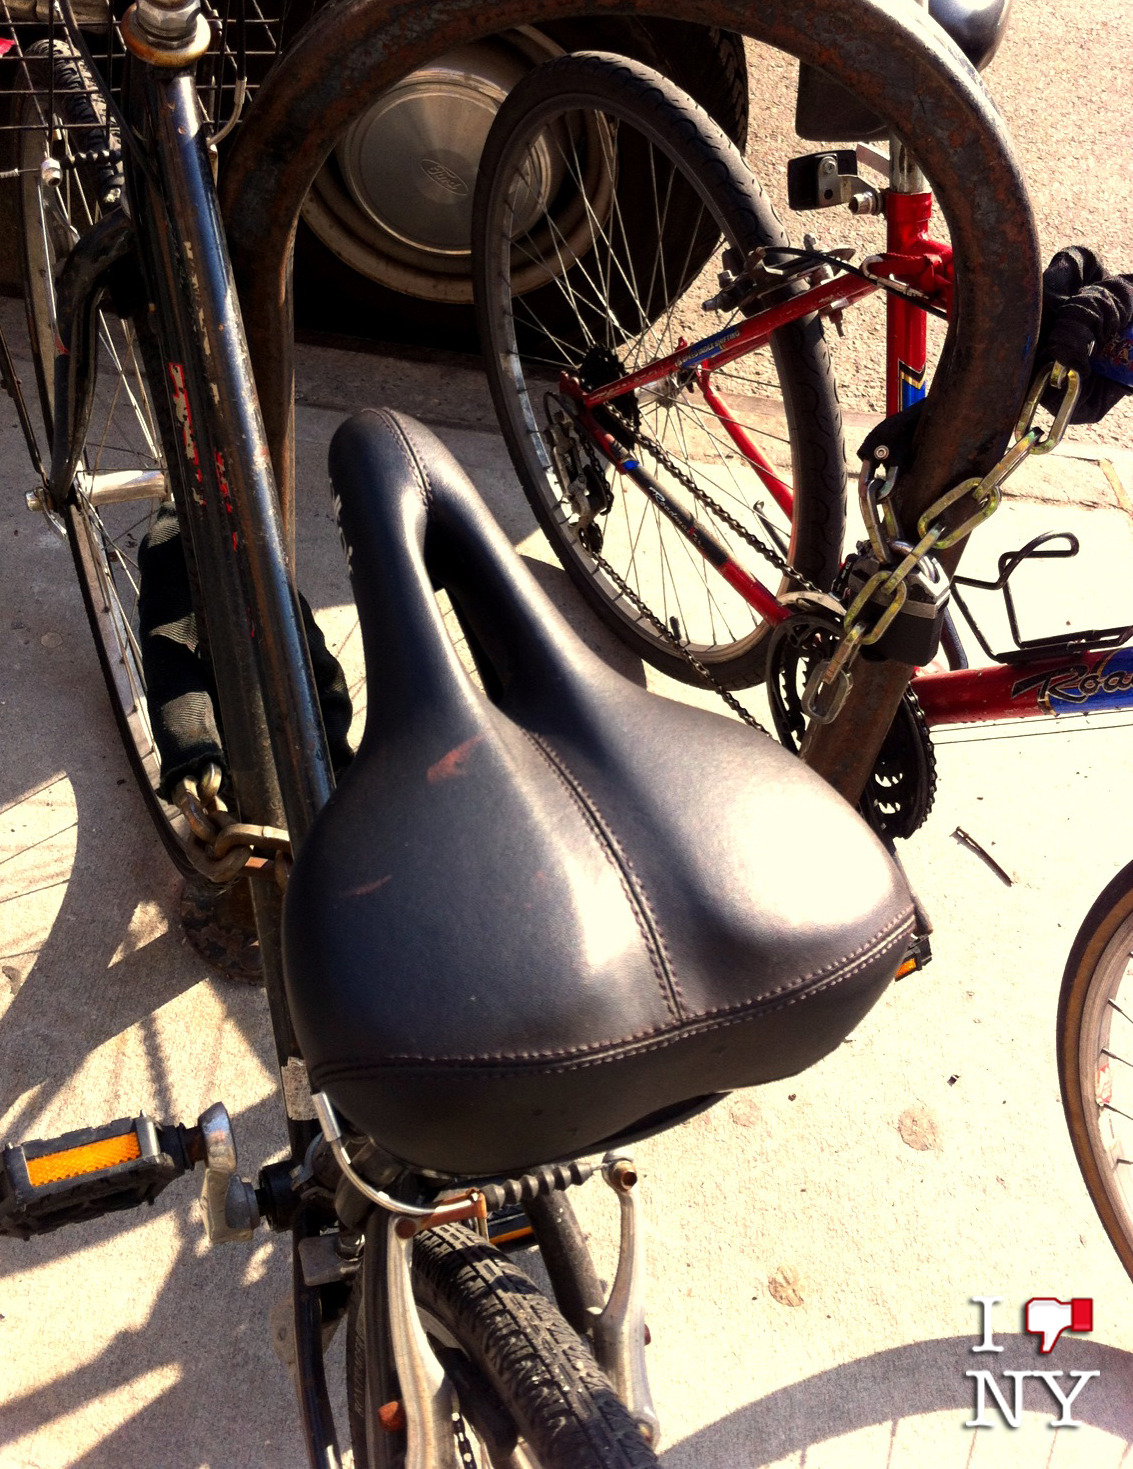 At last, they make bicycle seats that let your vagina breathe.